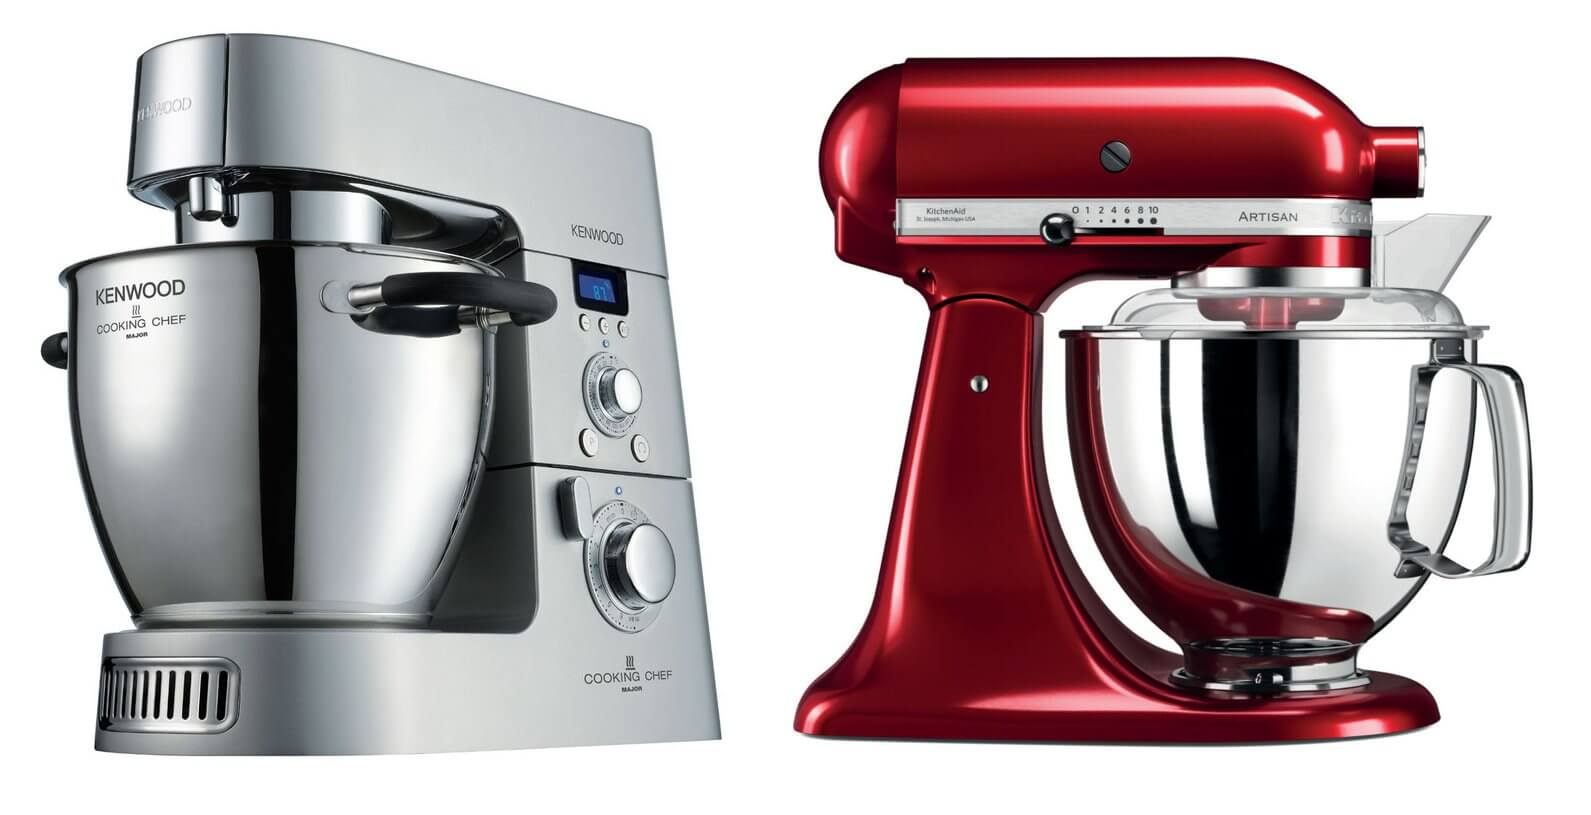 Comparatif Robot Patissier Kenwood Et Kitchenaid Kenwood Vs Kitchen Aid Quels Sont Les Meilleurs Robots